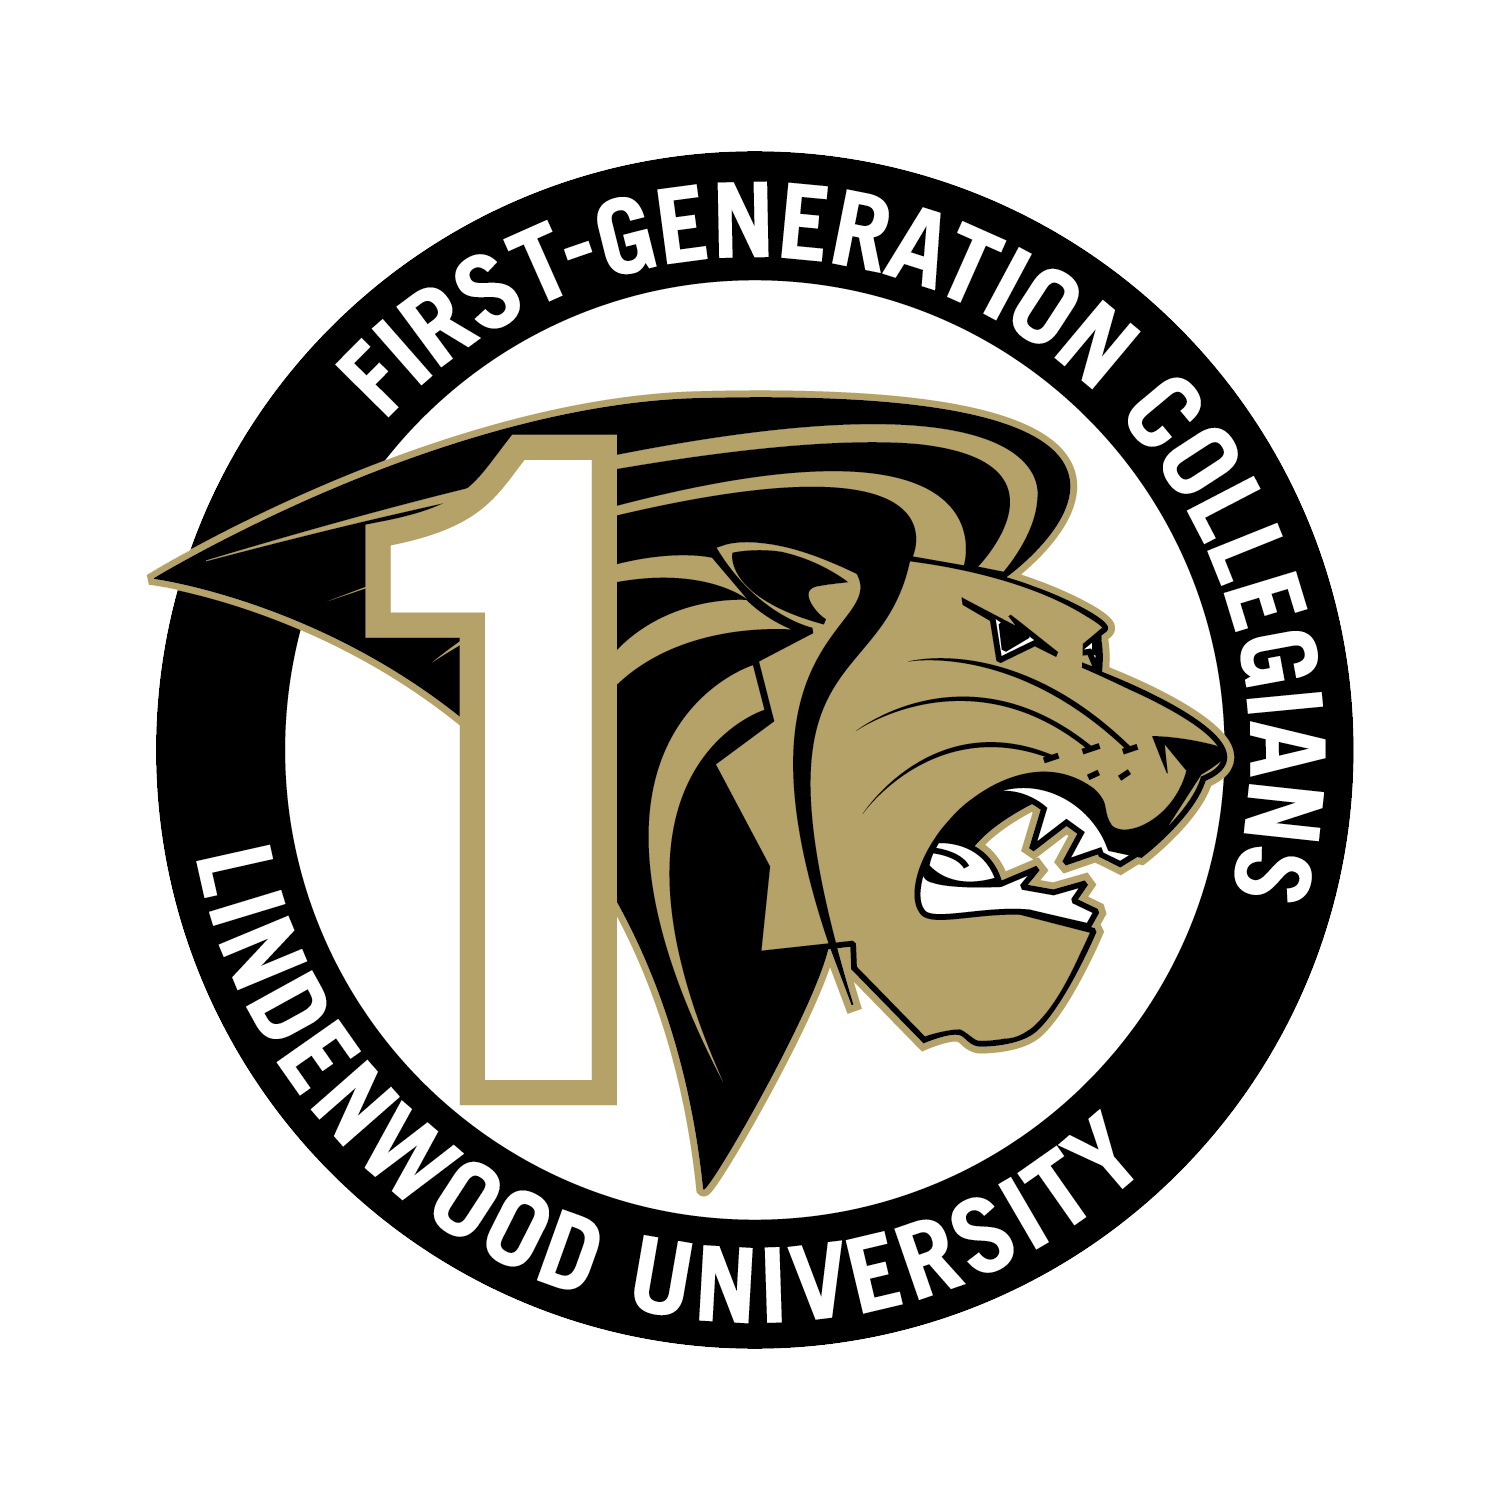 First-Generation Collegians